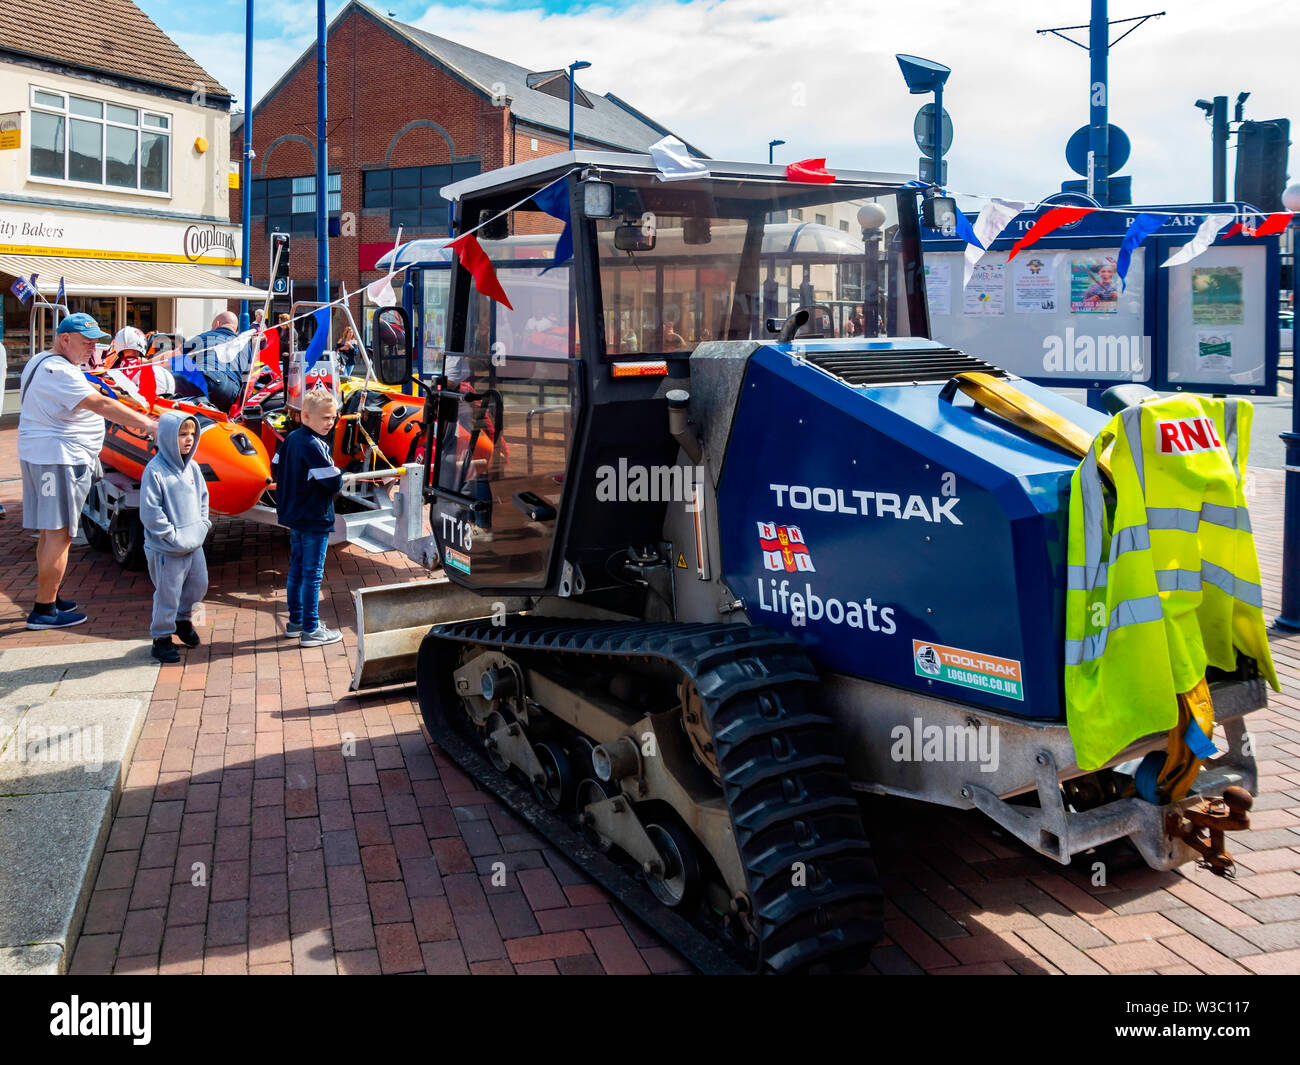 Parents and Children viewing a small RNLI inflatable lifeboat with a Tooltrak tracked launch tractor on display in Redcar High Street for fund raising - Stock Image